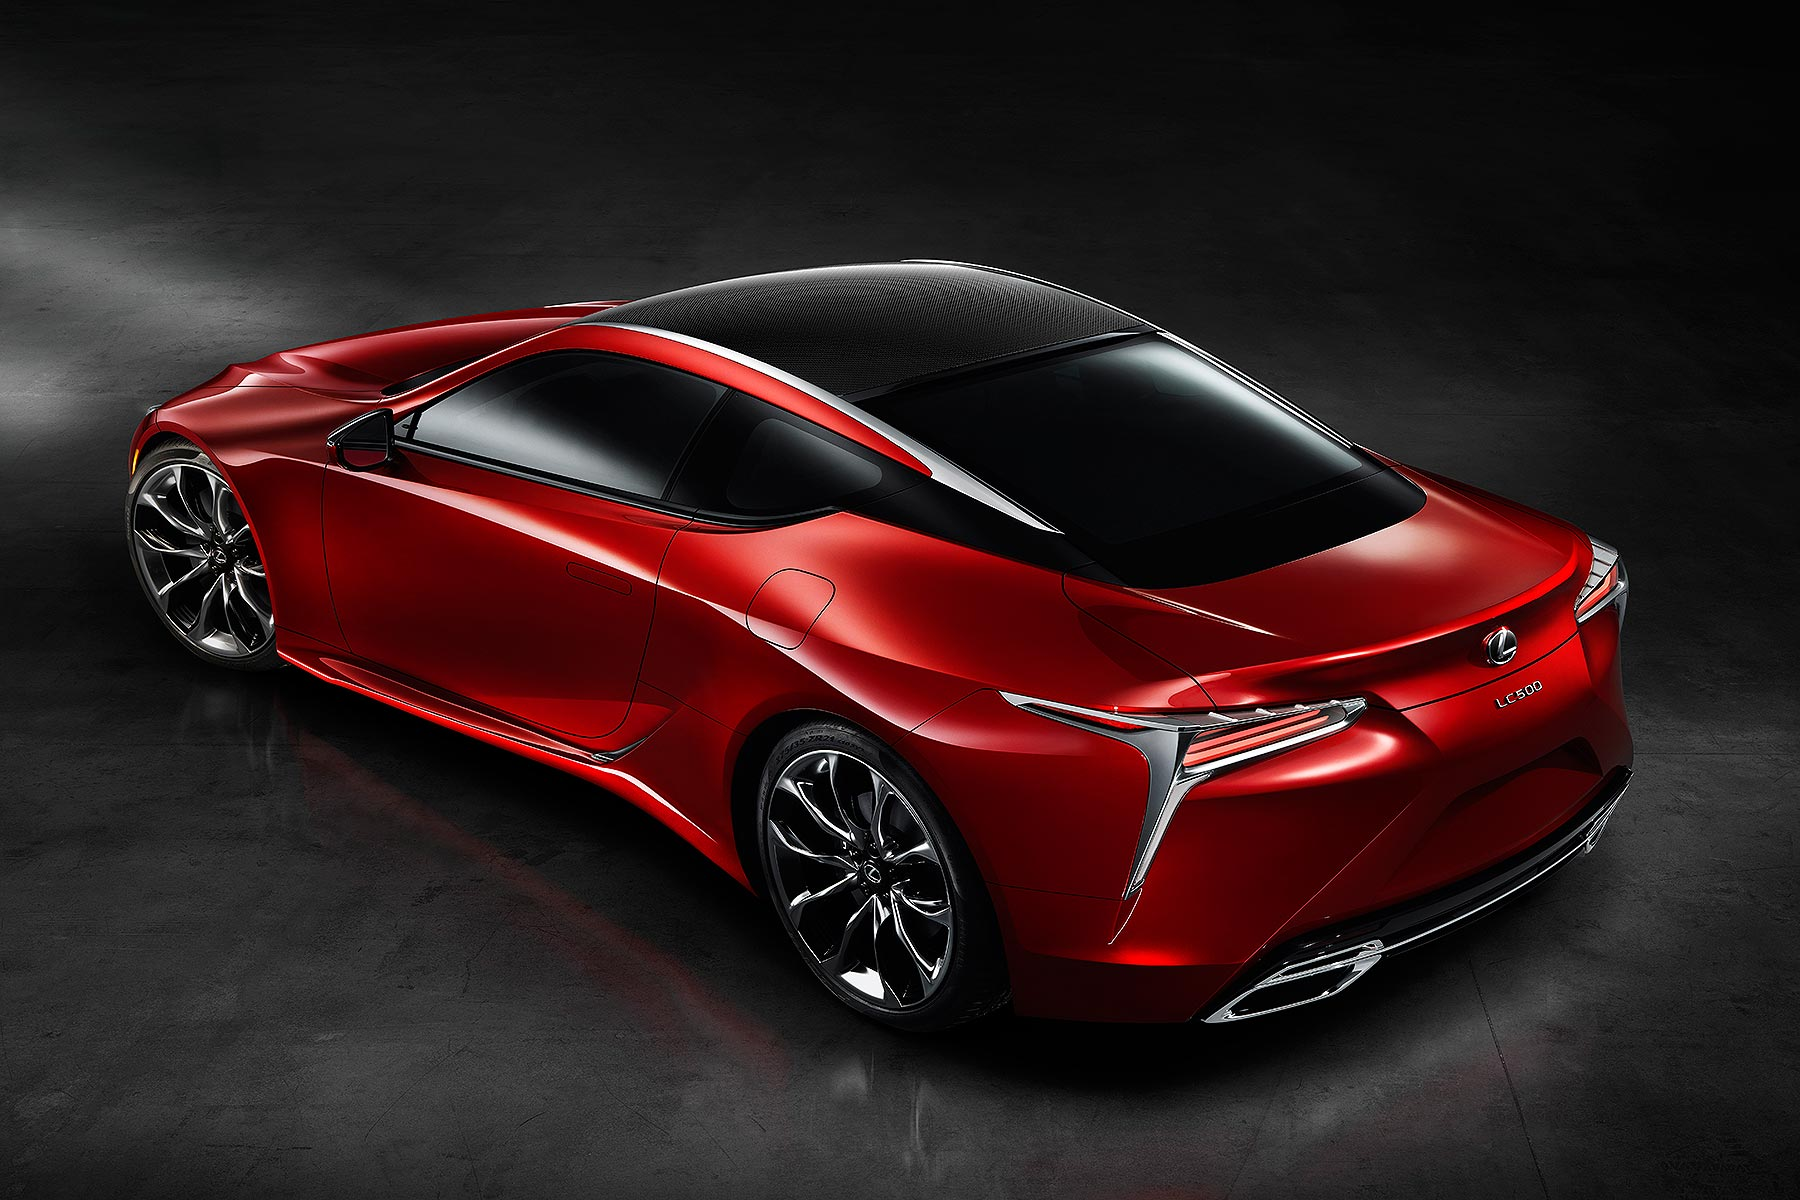 Detroit 2016: Lexus LC 500 luxury coupe revealed at NAIAS ...